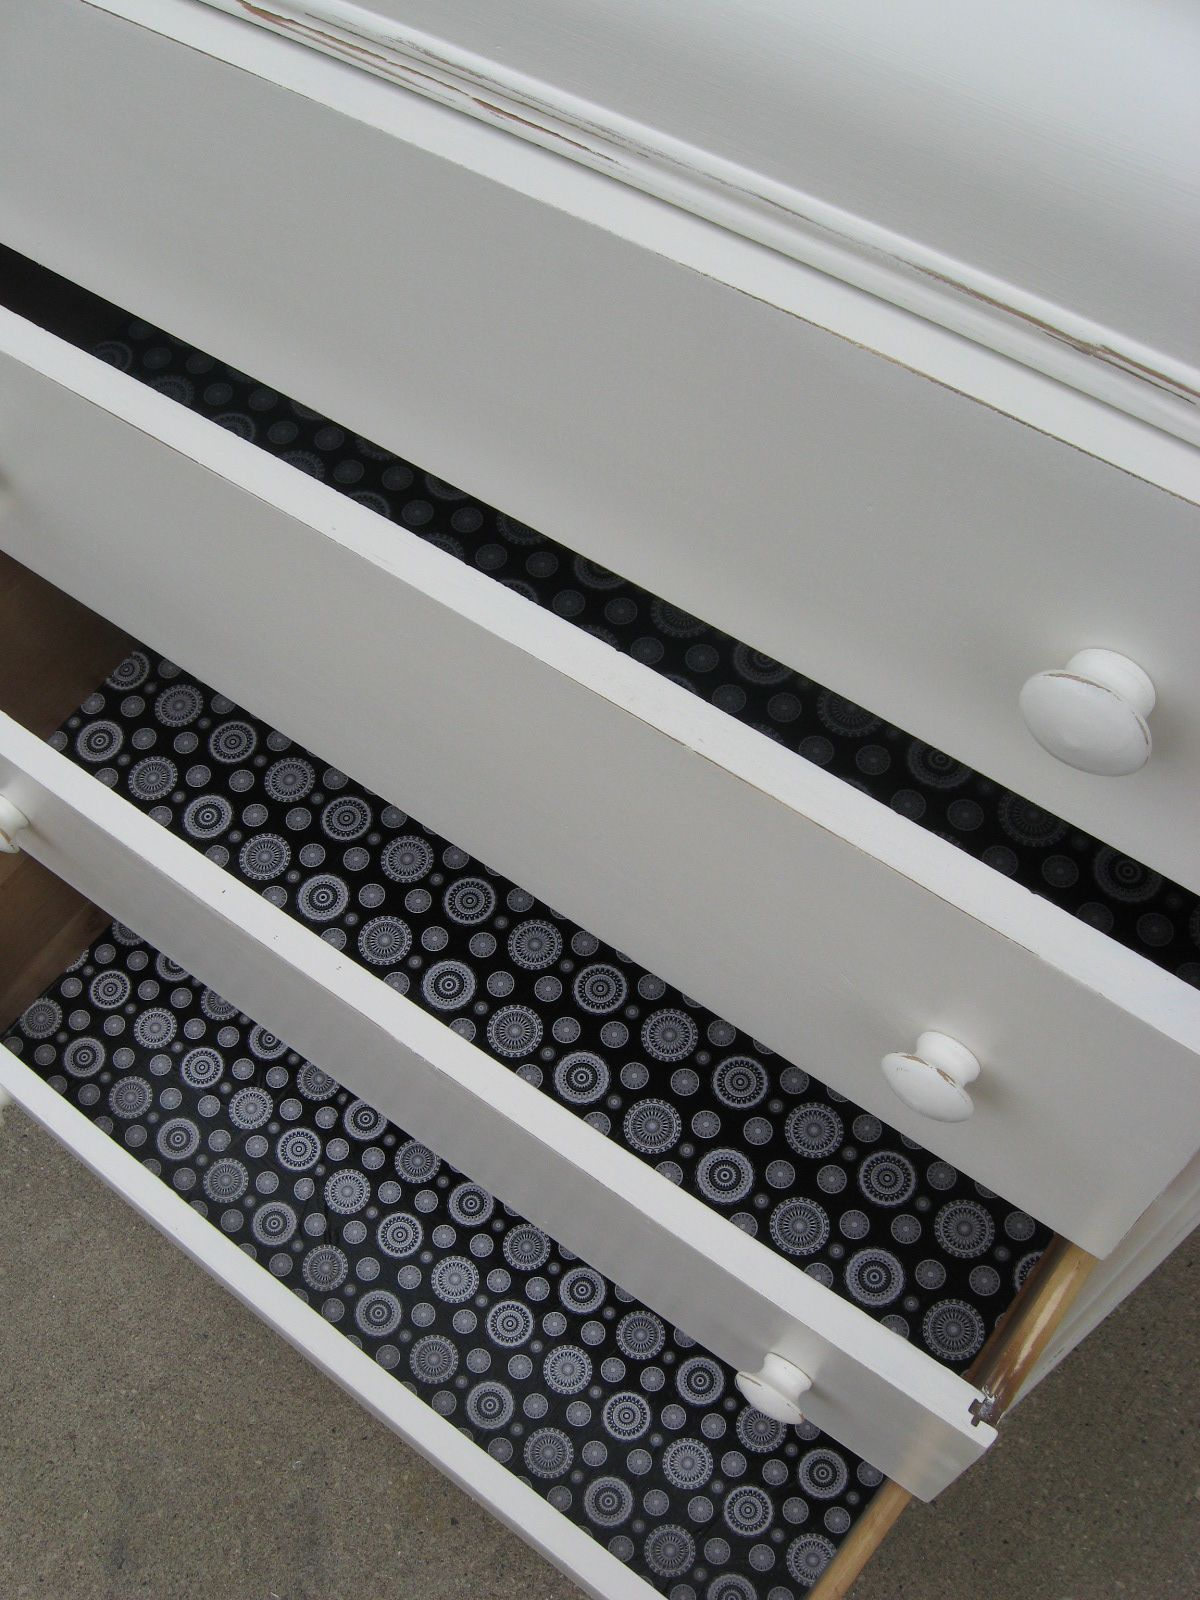 Cheap shelves shelf liners : Lowes drawer and shelf liners